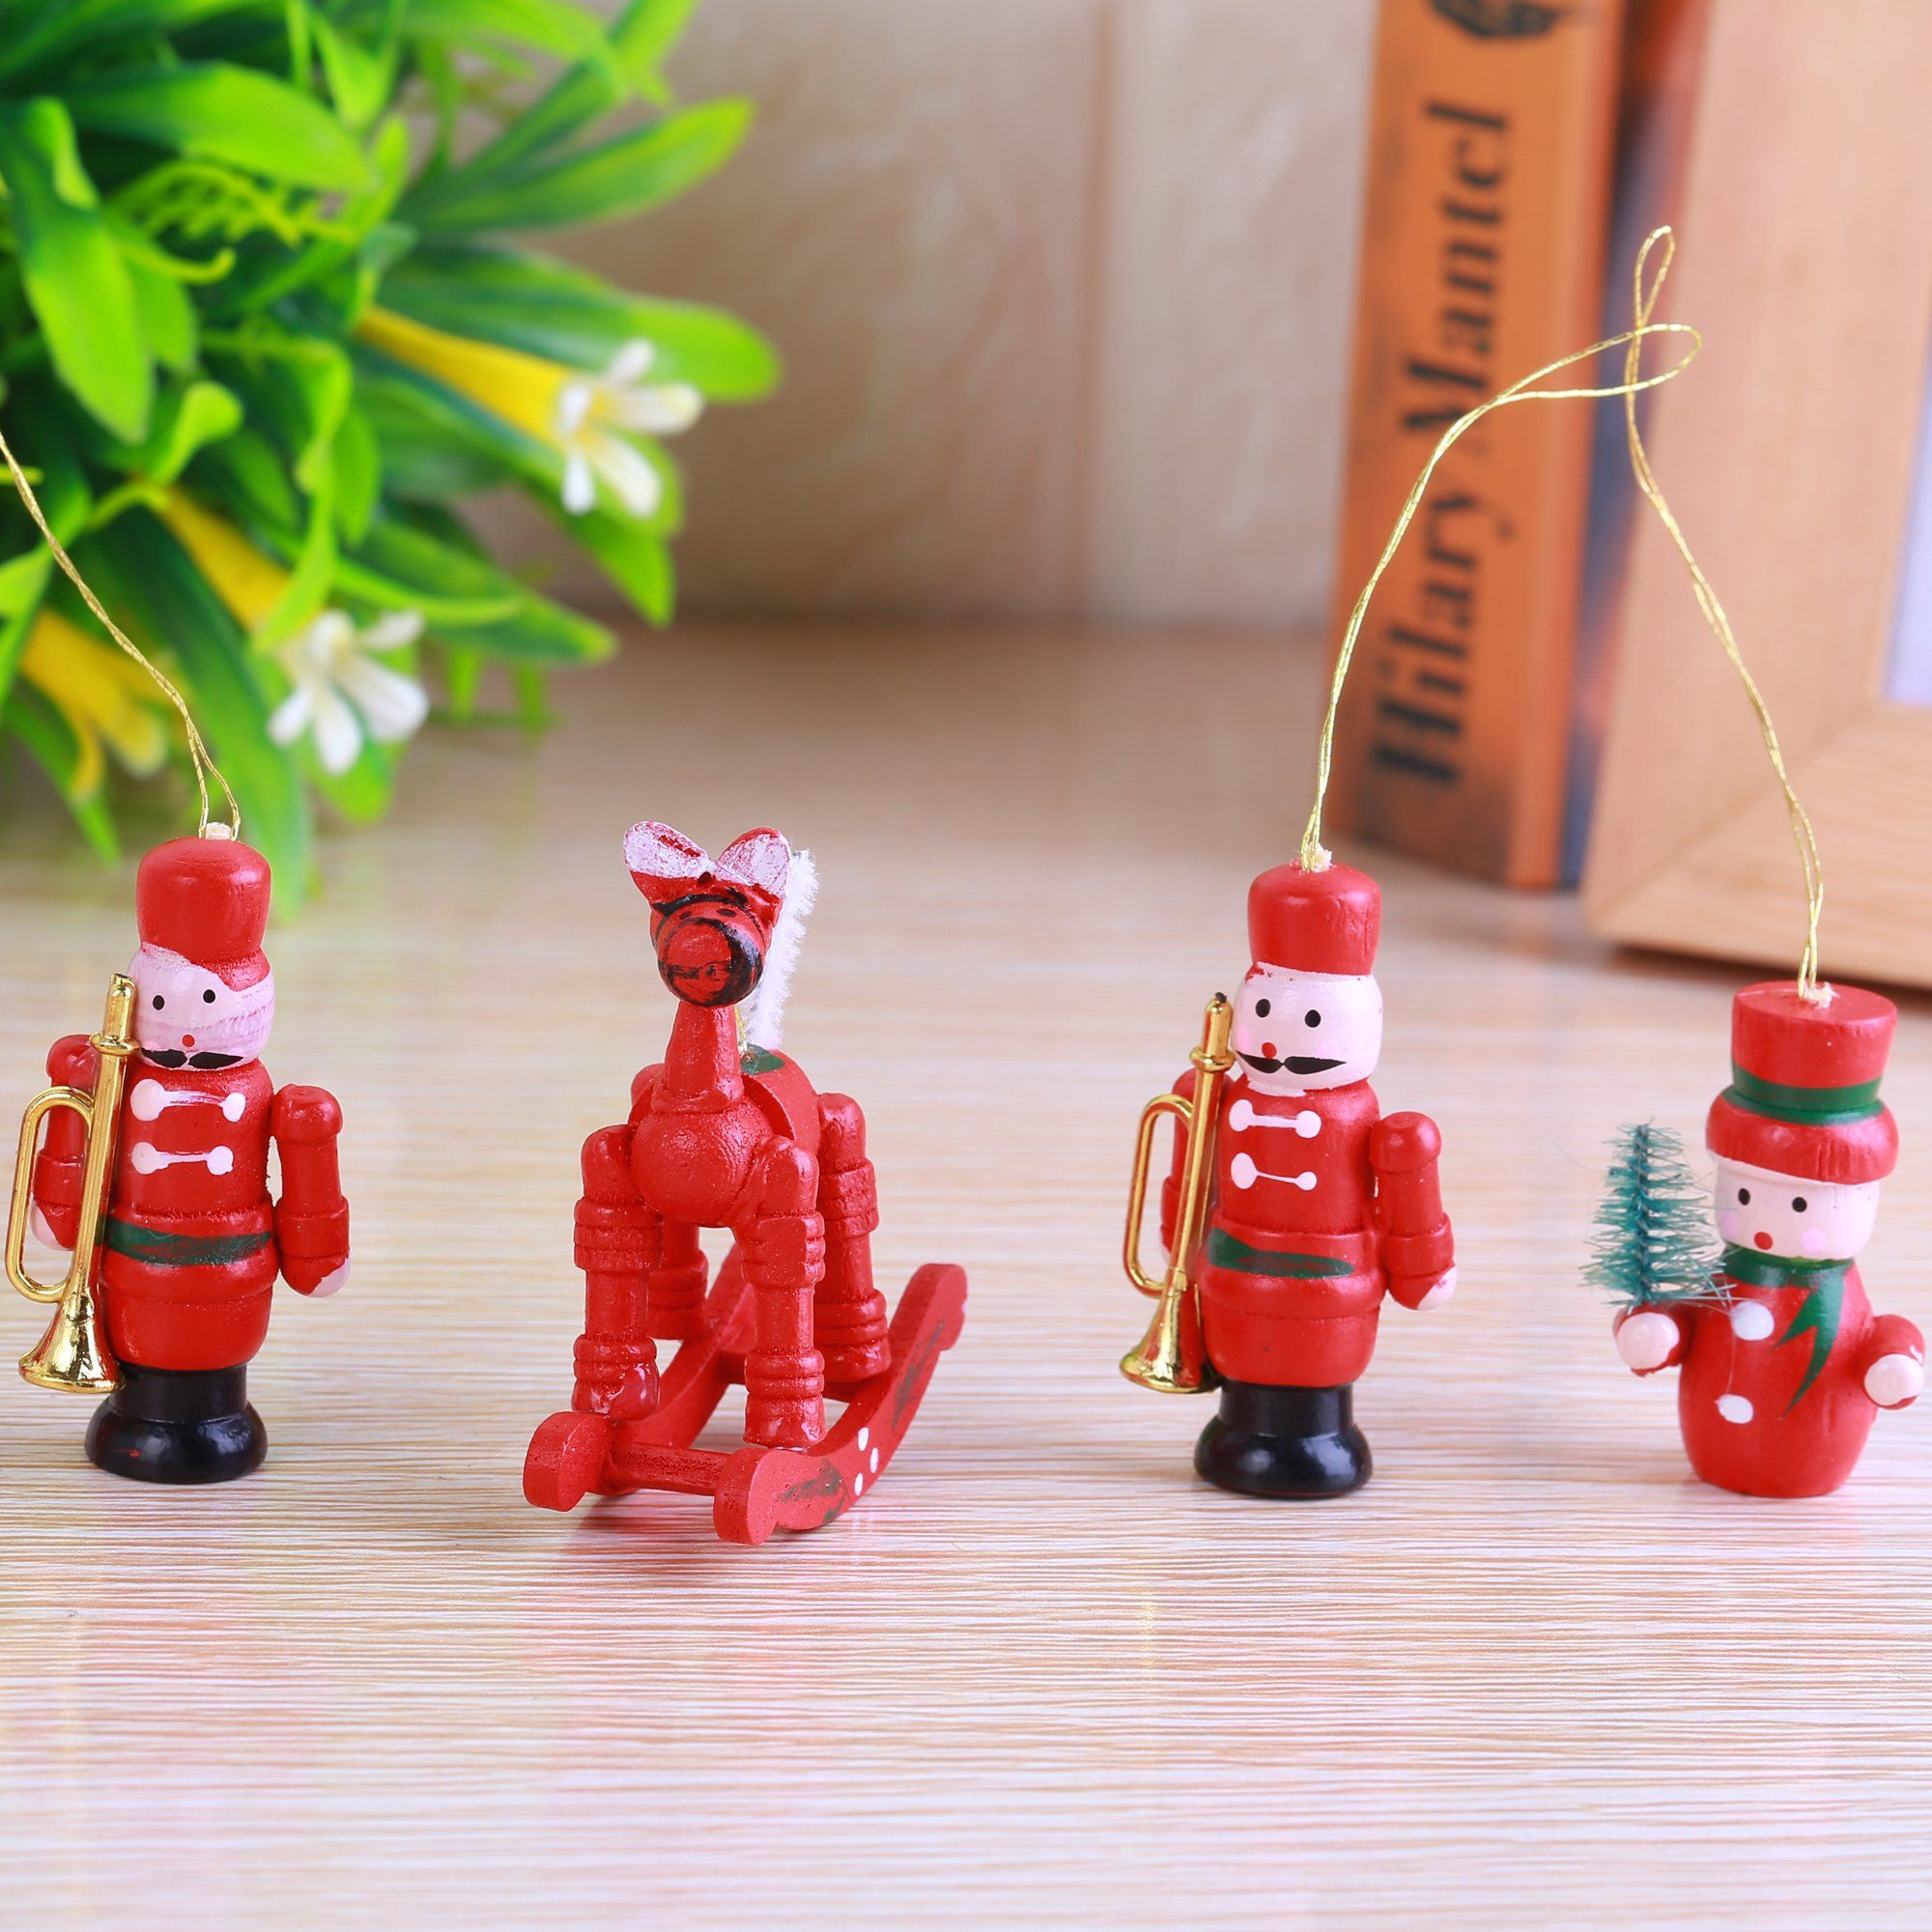 Miniature Red Wooden Christmas Ornaments Handmade Sets Christmas Tree Small Pendant Crafts Party Decorations Gift For Kids Snowman Angels Wooden House Doll